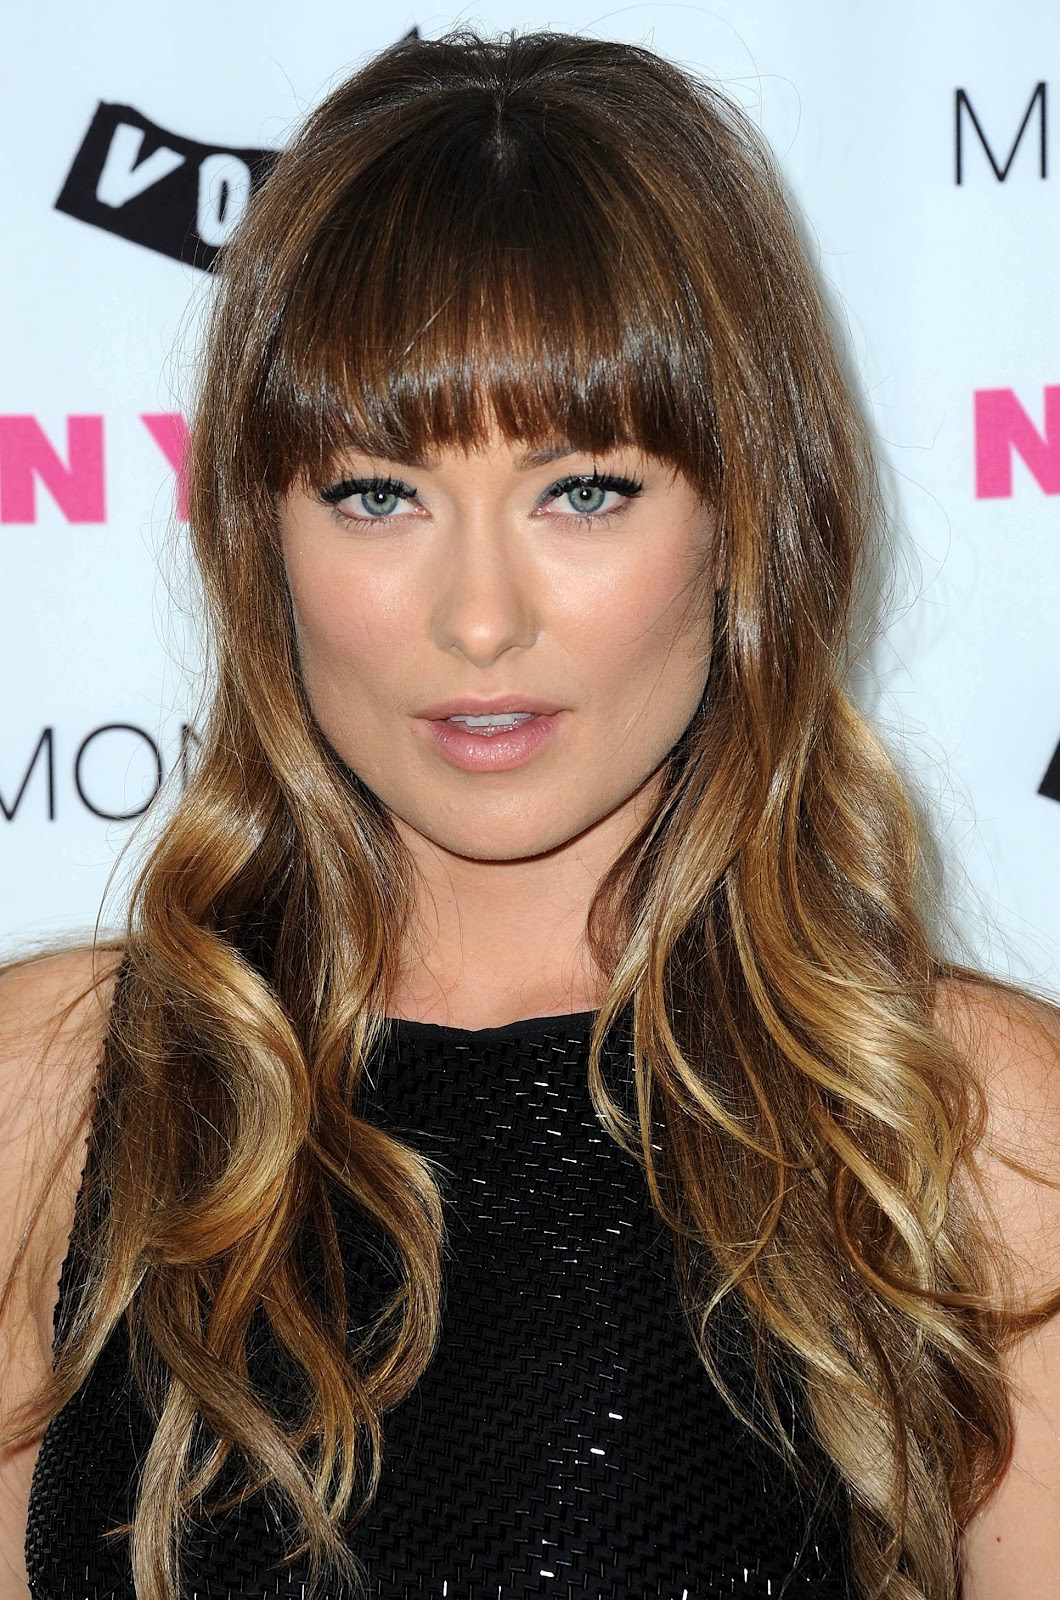 Olivia Wilde Pictures Gallery 3: She Said...: The Ombre Look